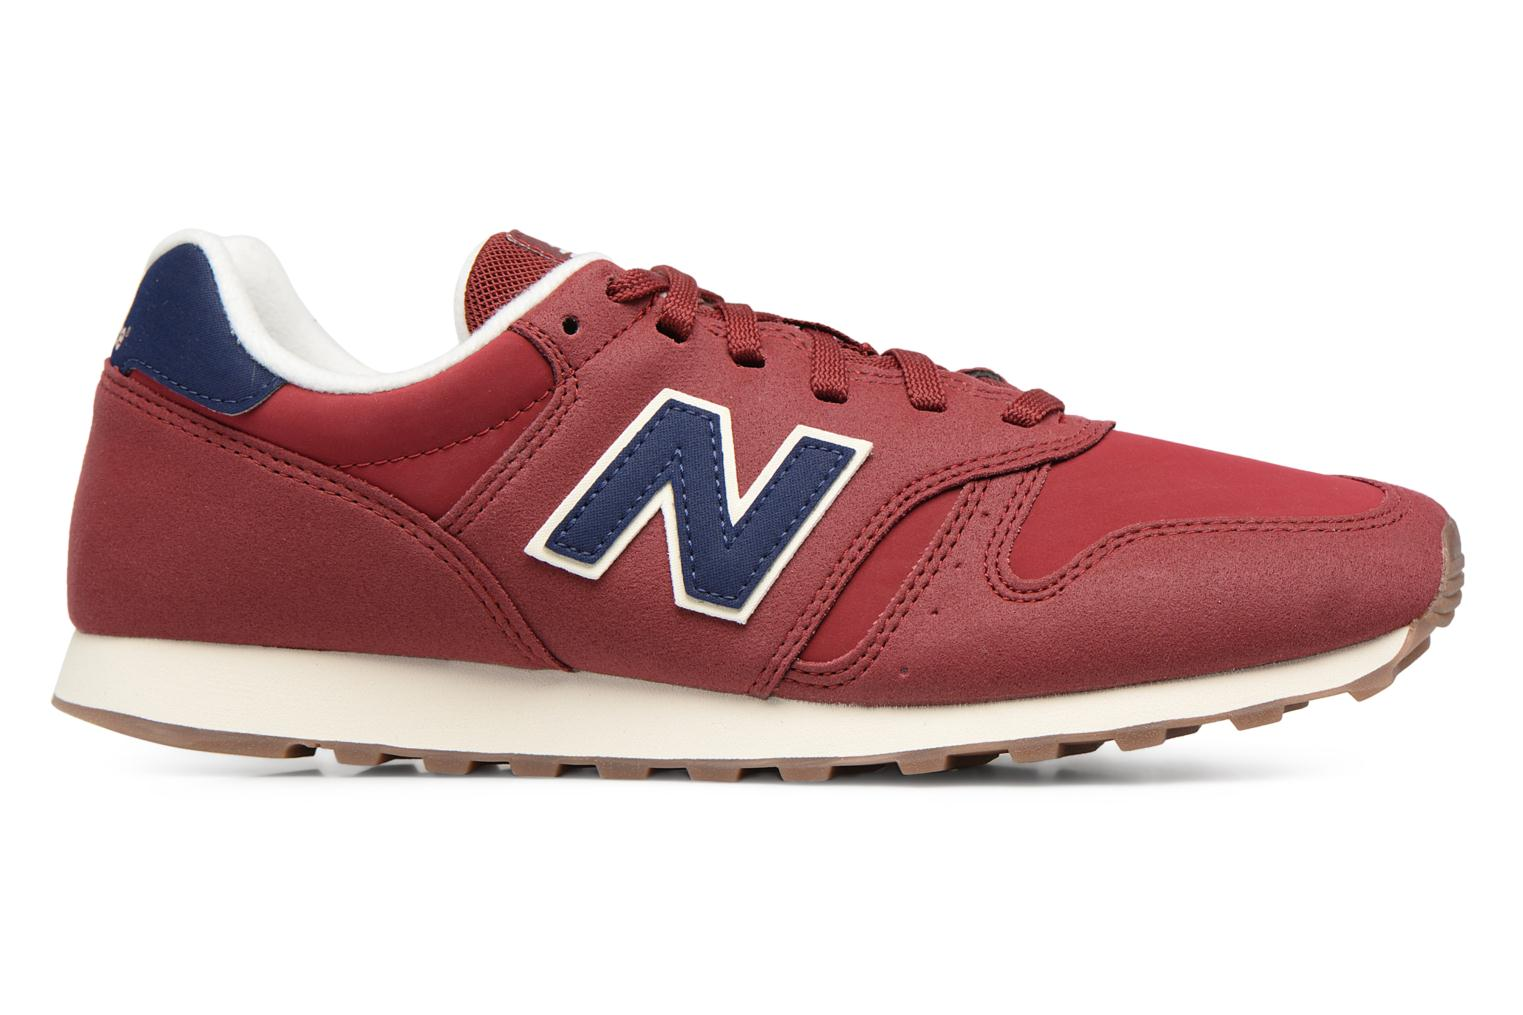 ML373 Red/Blue